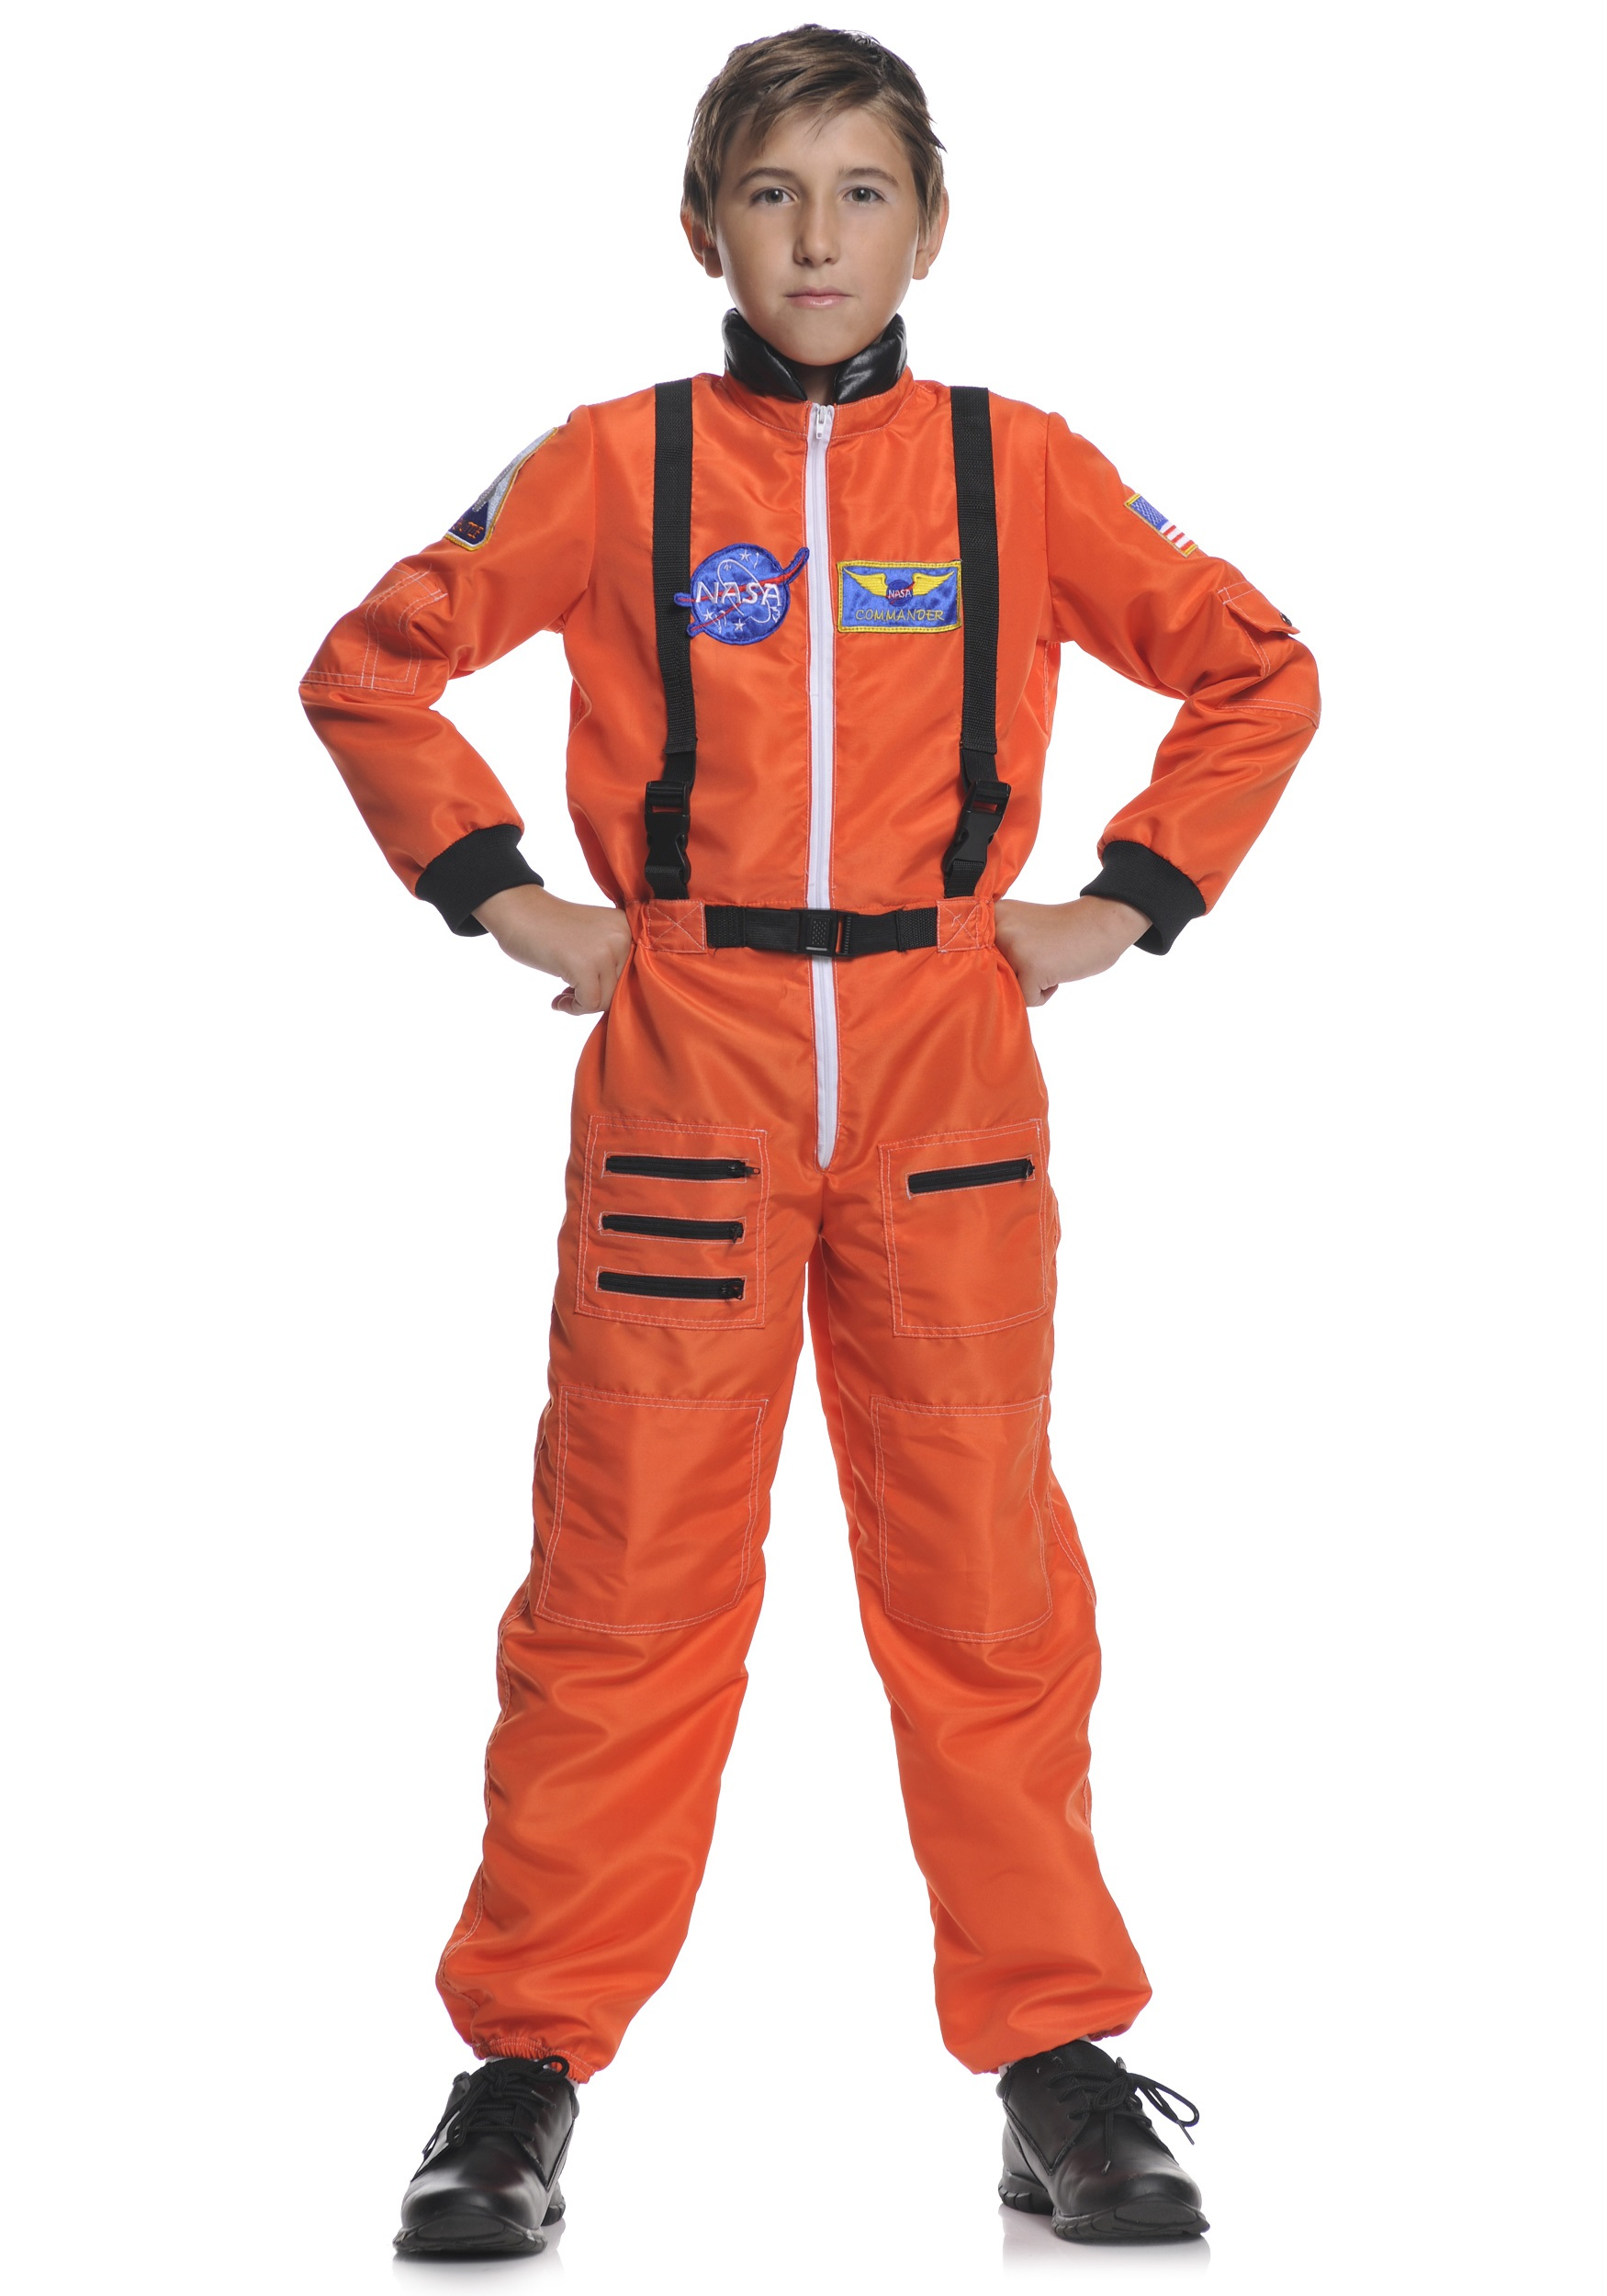 3, 2, 1 Liftoff for Halloween fun! This comfortable costume is styled after real astronauts' uniforms. DETAILS THAT MATTER. Two-piece design includes astronaut.